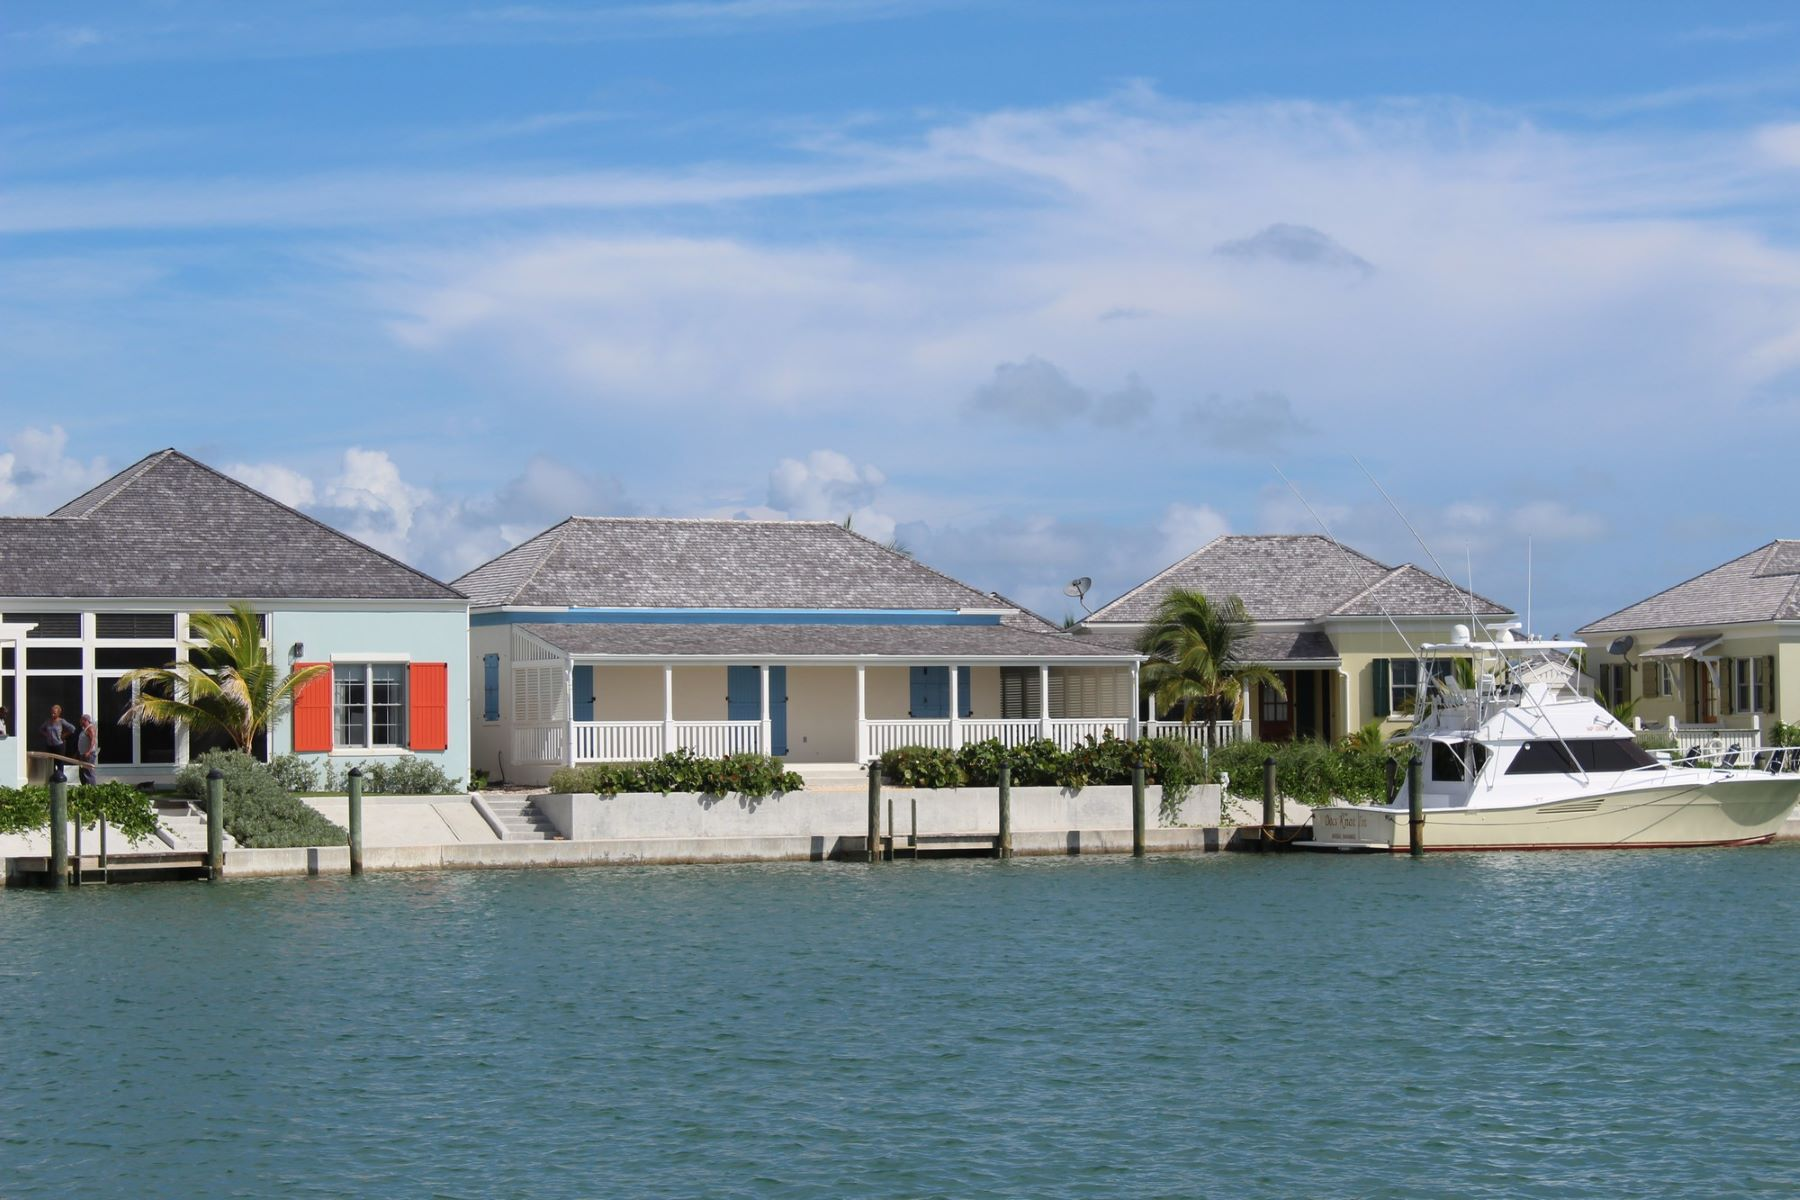 Vivienda unifamiliar por un Venta en Carioca Cottage, The Island at Schooner Bay Village Schooner Bay, Abaco Bahamas